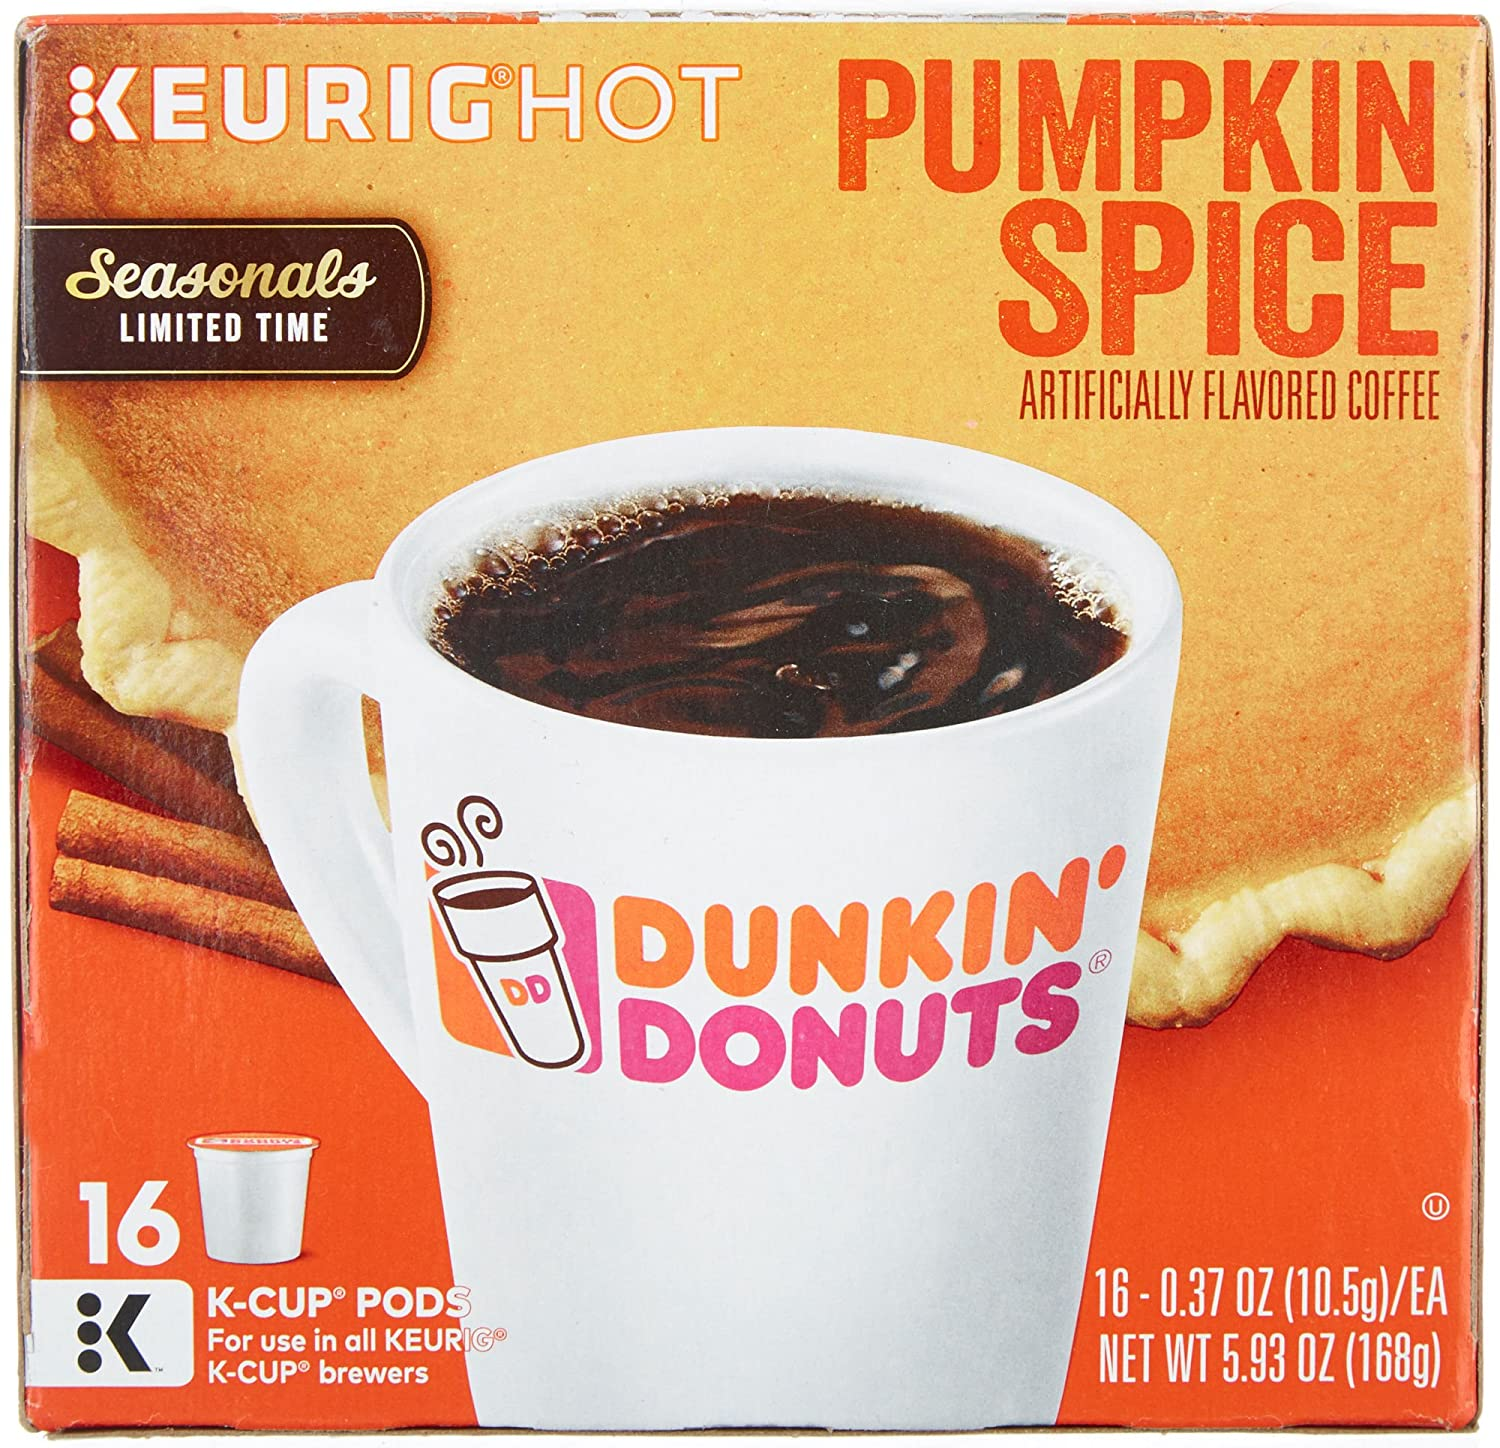 Dunkin Donuts Pumpkin Spice Flavor K-Cups for Keurig Coffee Brewers, 16 Count